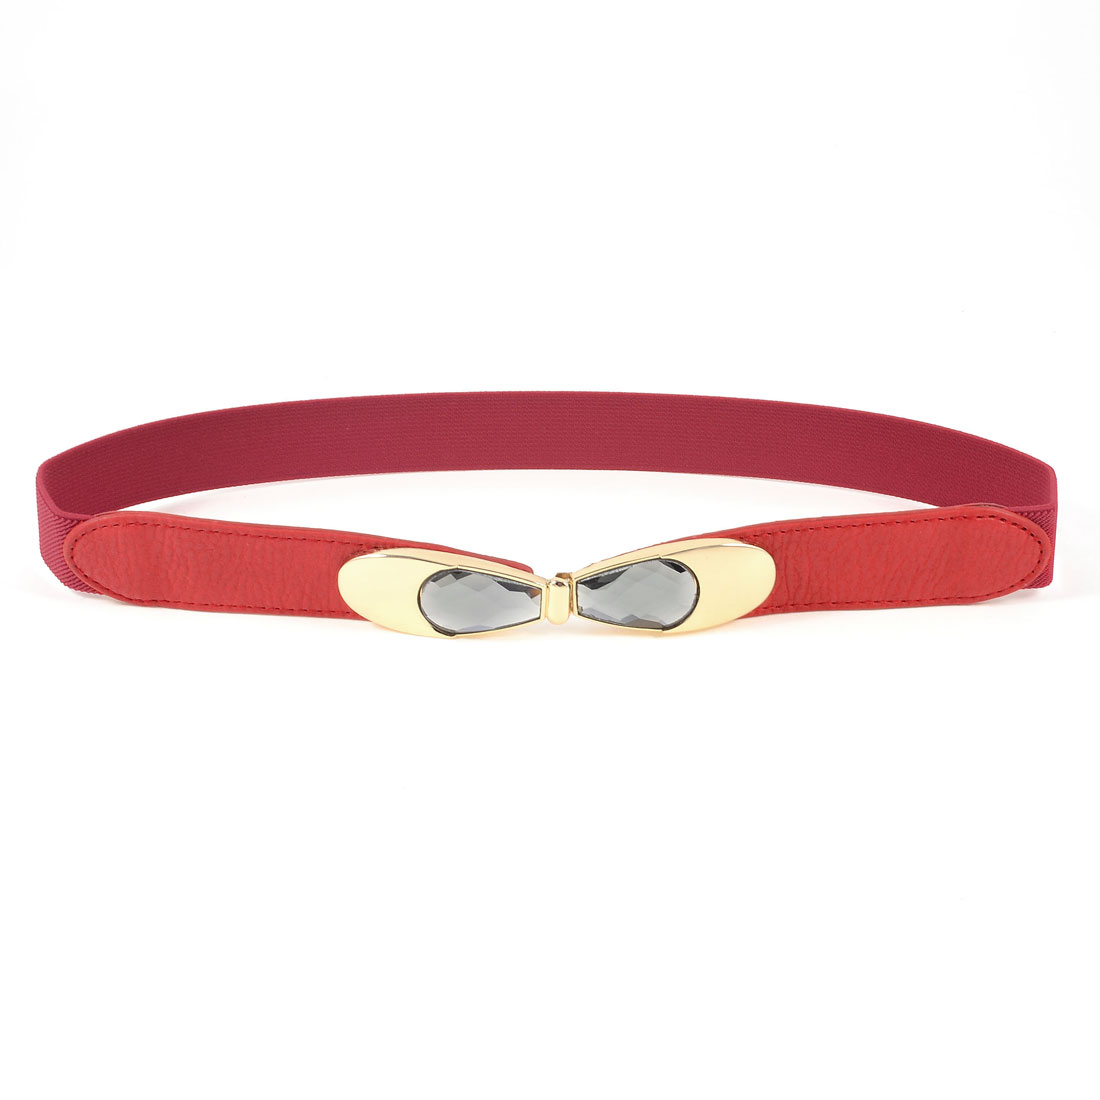 Gold Tone Bowtie Buckle Red Stretch Textured Cinch Belt Dress Ornament for Women